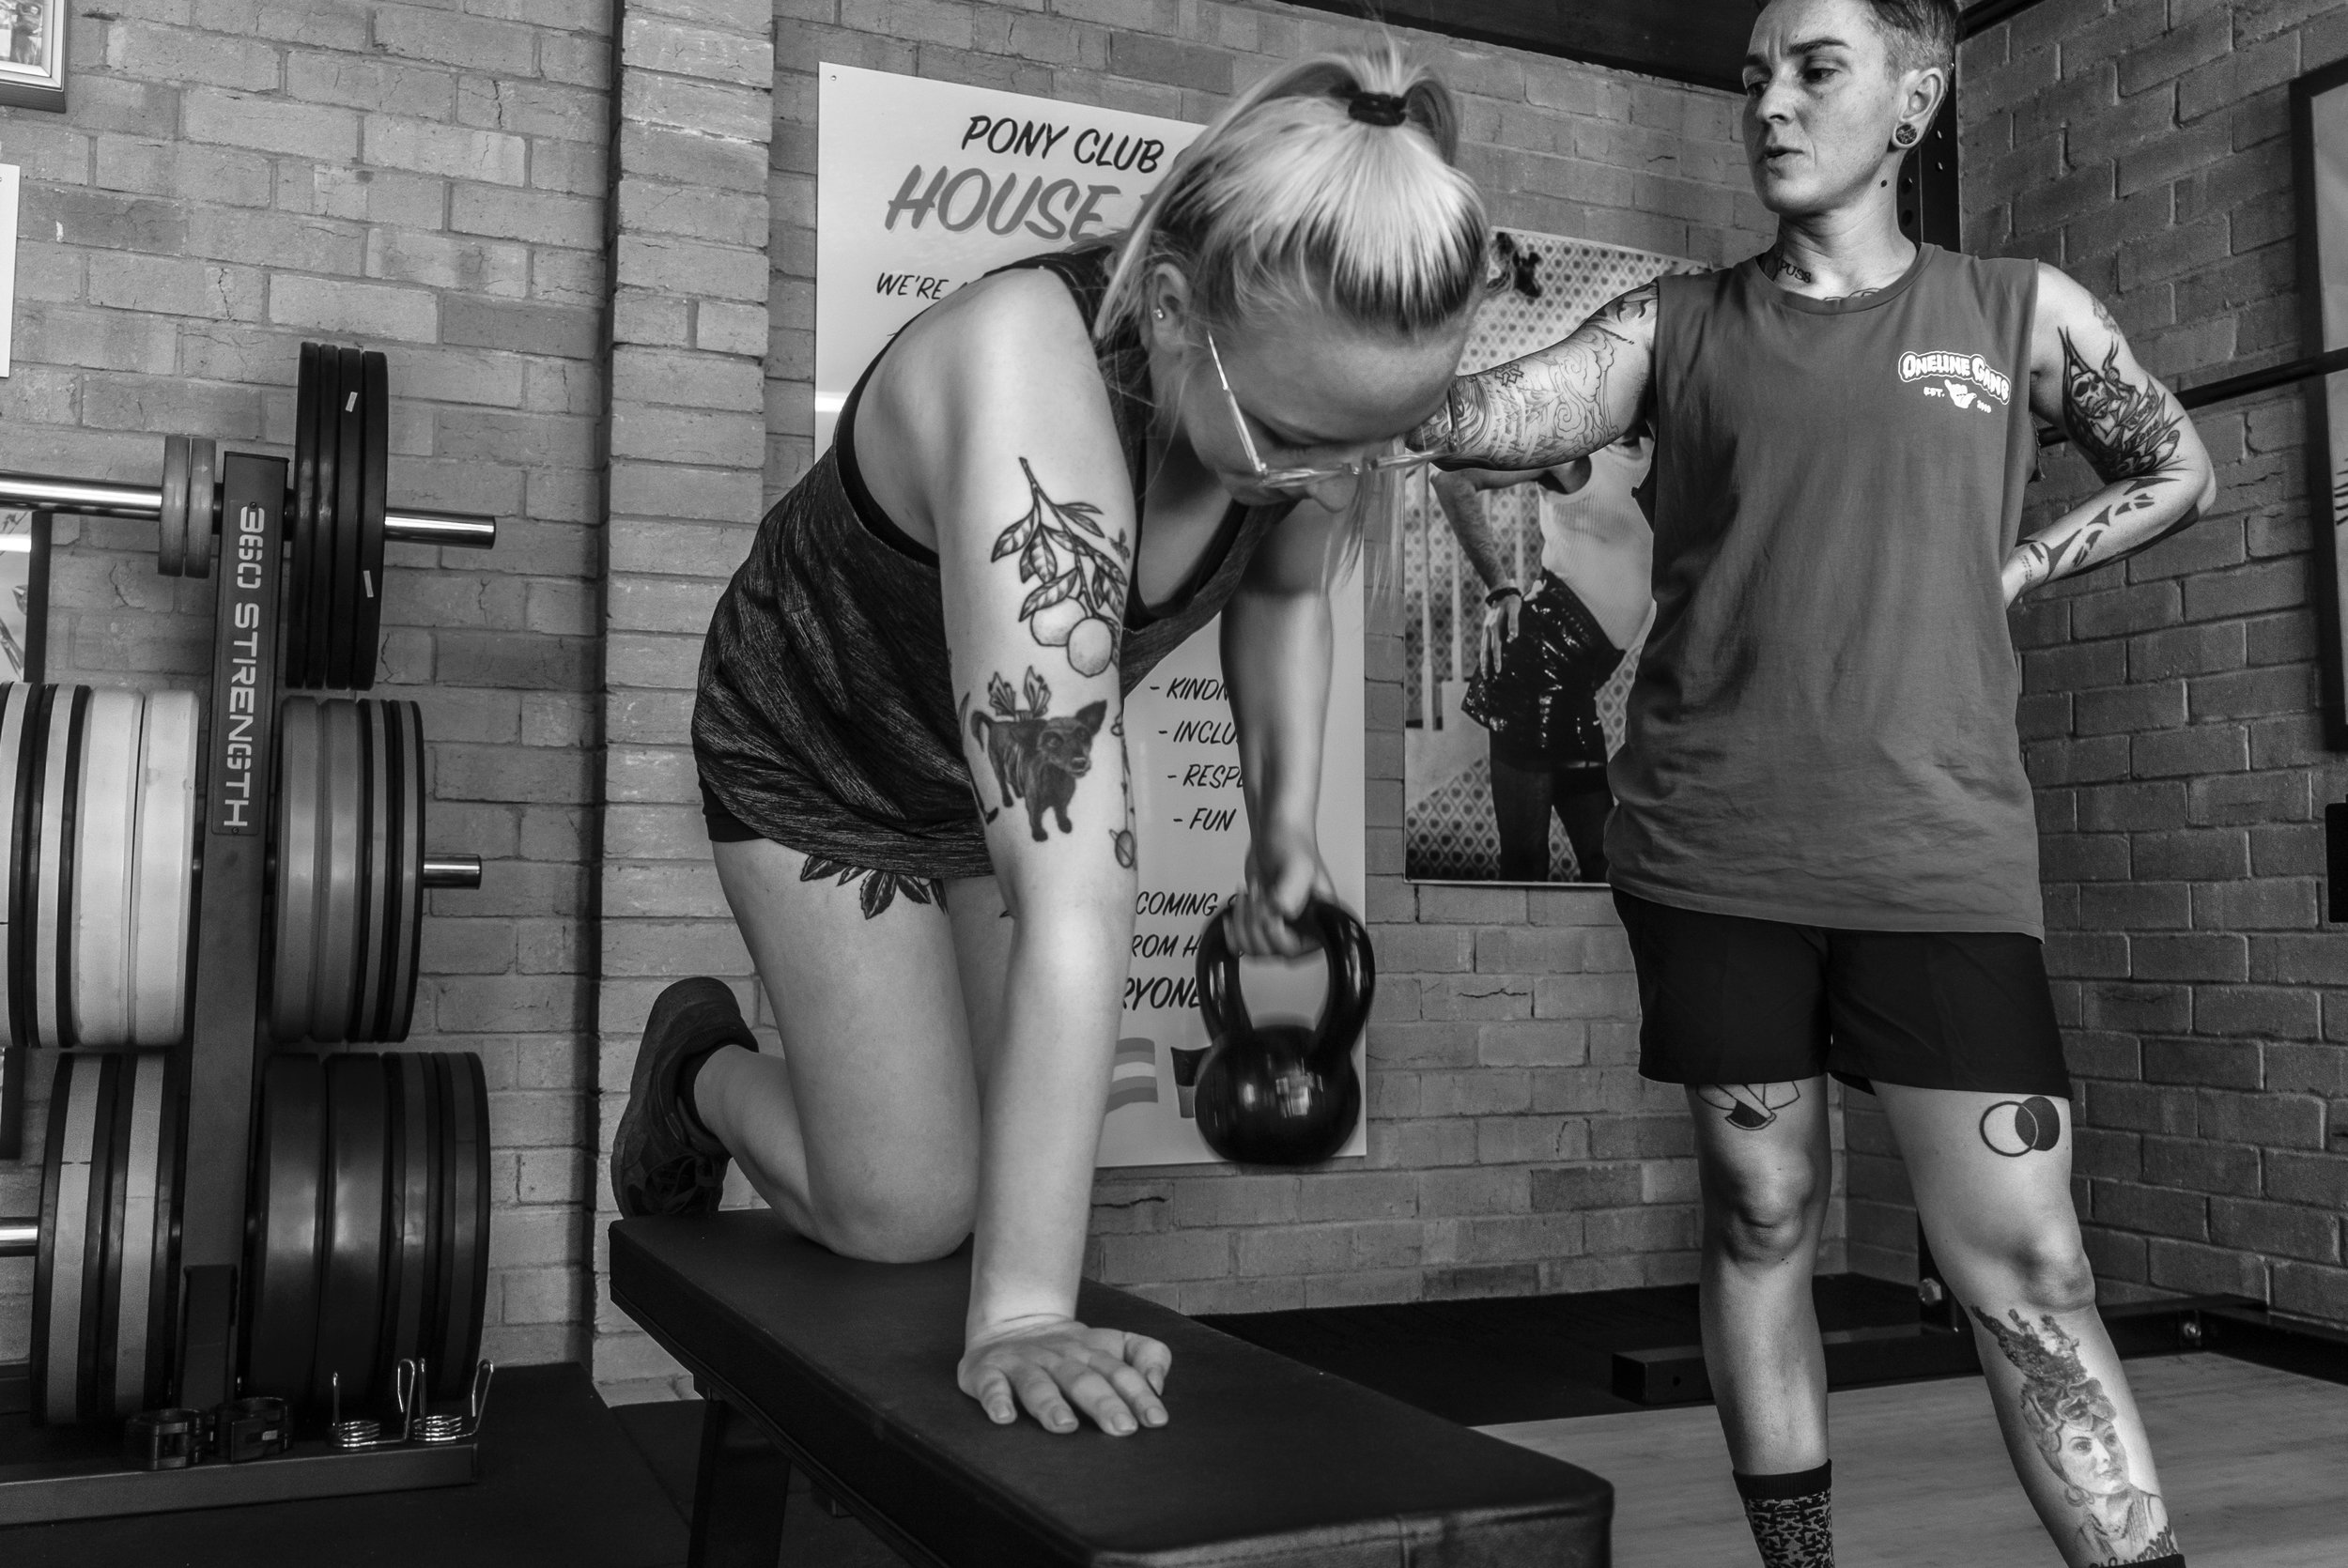 Personal Training - Personal Training can run as a 1 on 1 or 1 on 2 session. This is a good way to have an individualised program to assist with rehab, strength building, movement, mobility and technique. Book in on our booking page.